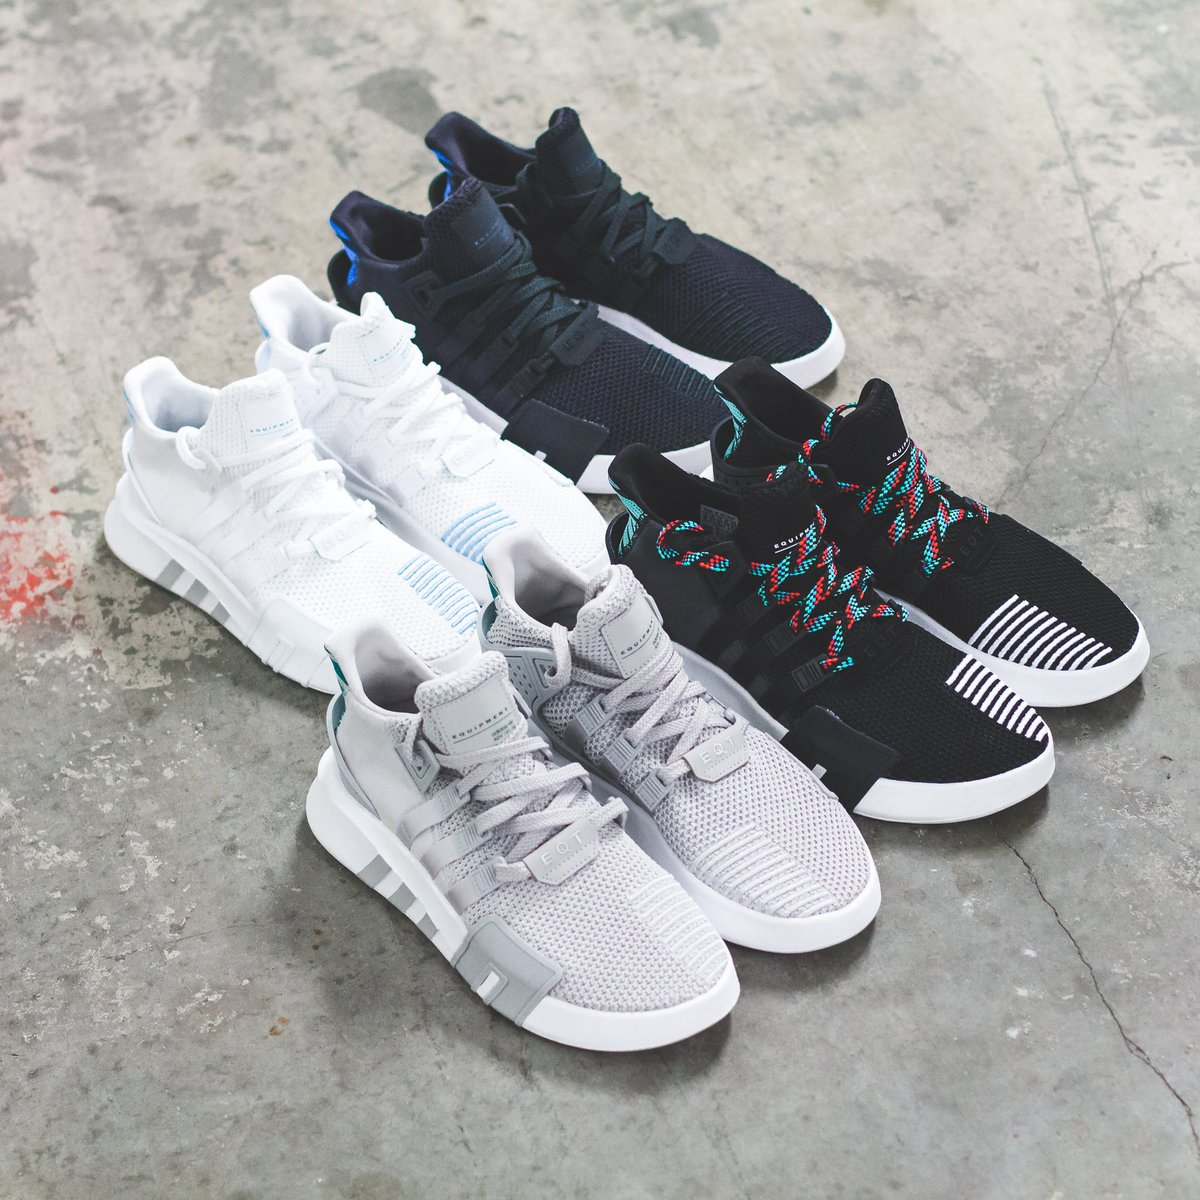 best website 5e97a 77a1b ONLINE NOW adidasoriginals EQT Basketball ADV Mens  Womens Pack (150  CAD). Thurs, Feb 1st - Available online now, with remaining pairs in-store  12PM ...